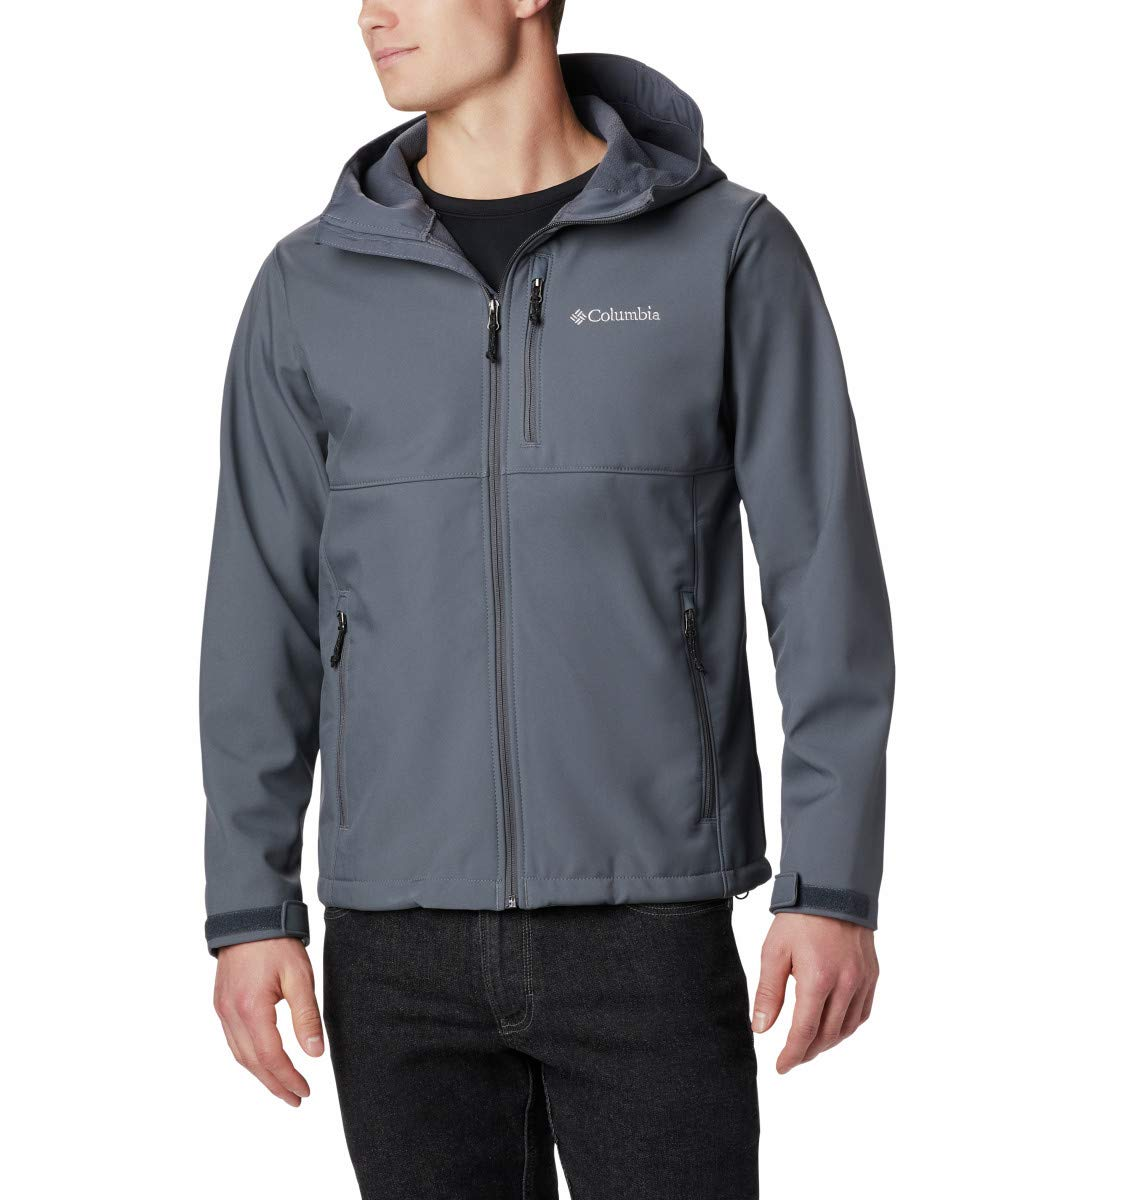 Columbia Men's Ascender Hooded Softshell Jacket, Graphite, Large by Columbia